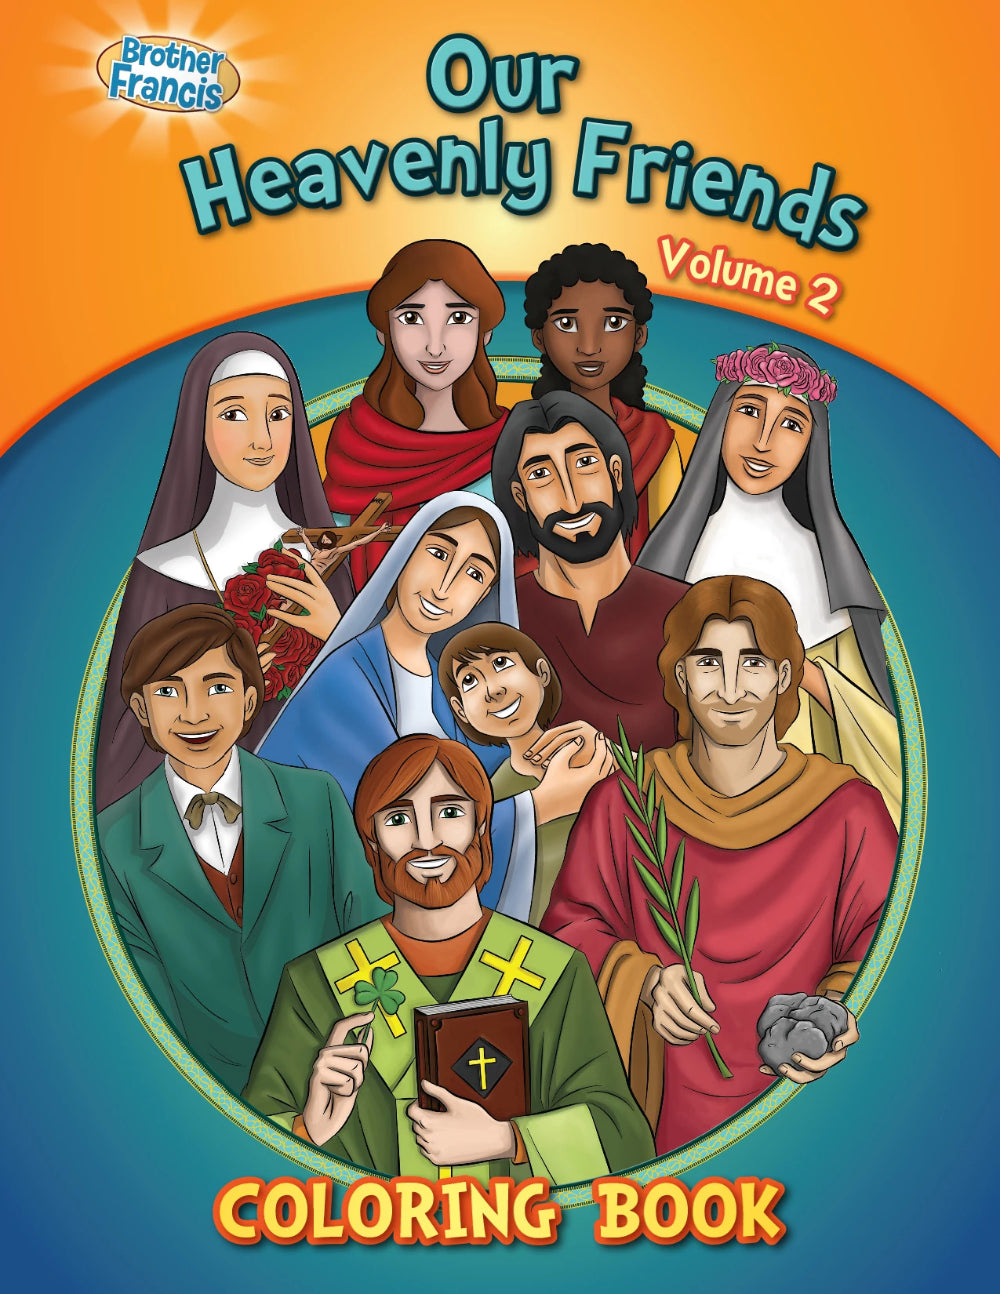 Our Heavenly Friends - The Saints - volume 2 coloring book by Brother Francis